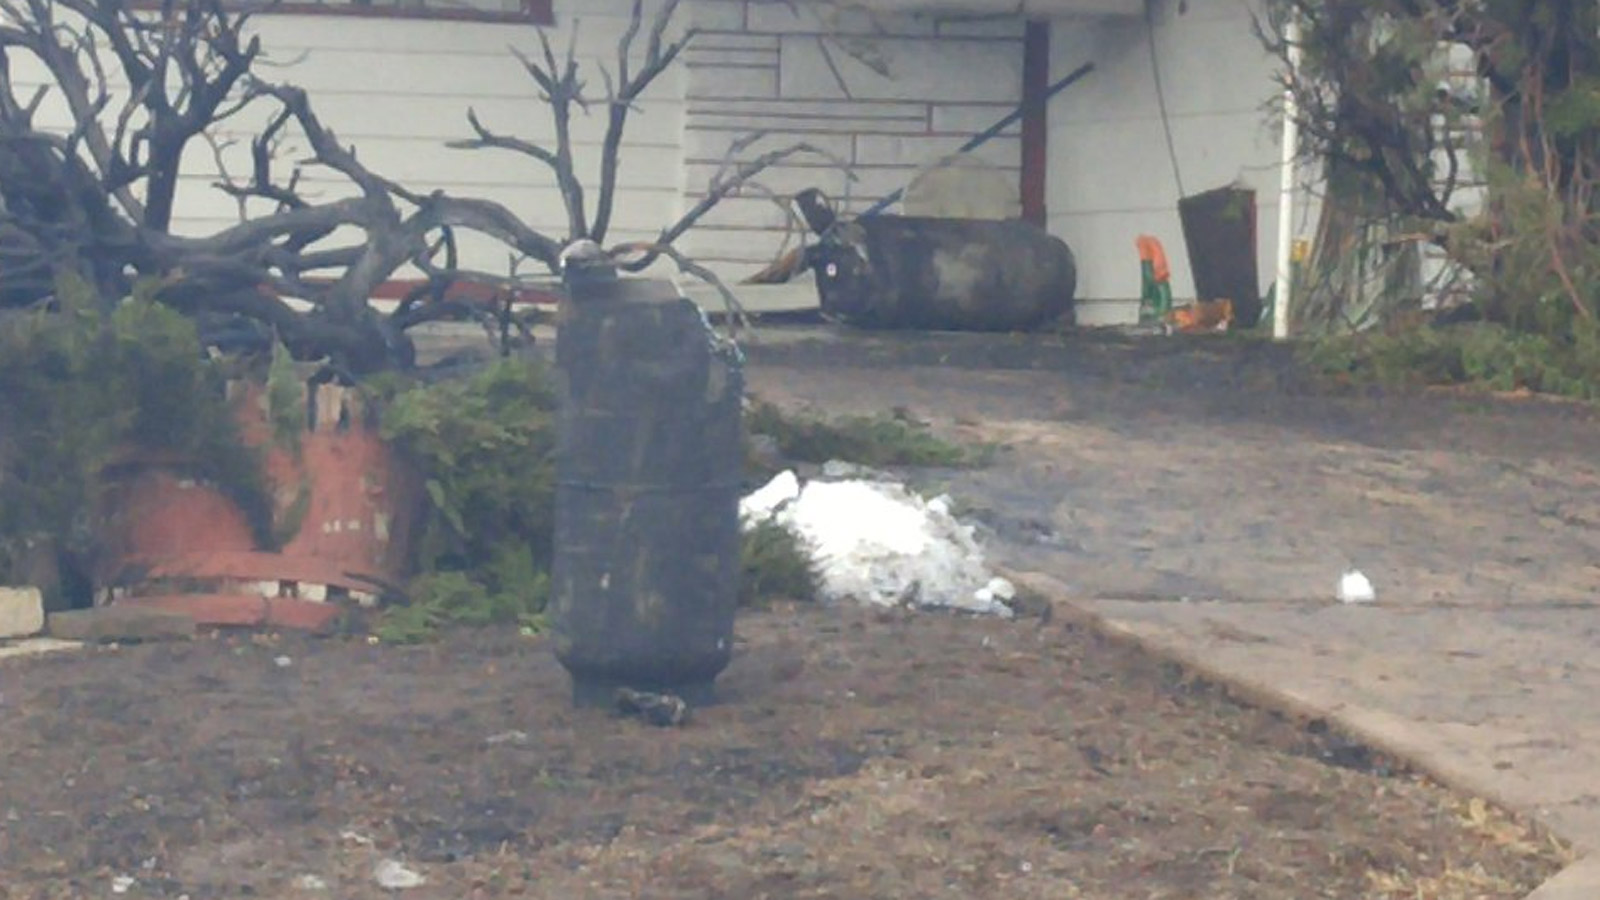 Several propane tanks were scattered around the neighborhood after the explosions (credit: CBS)